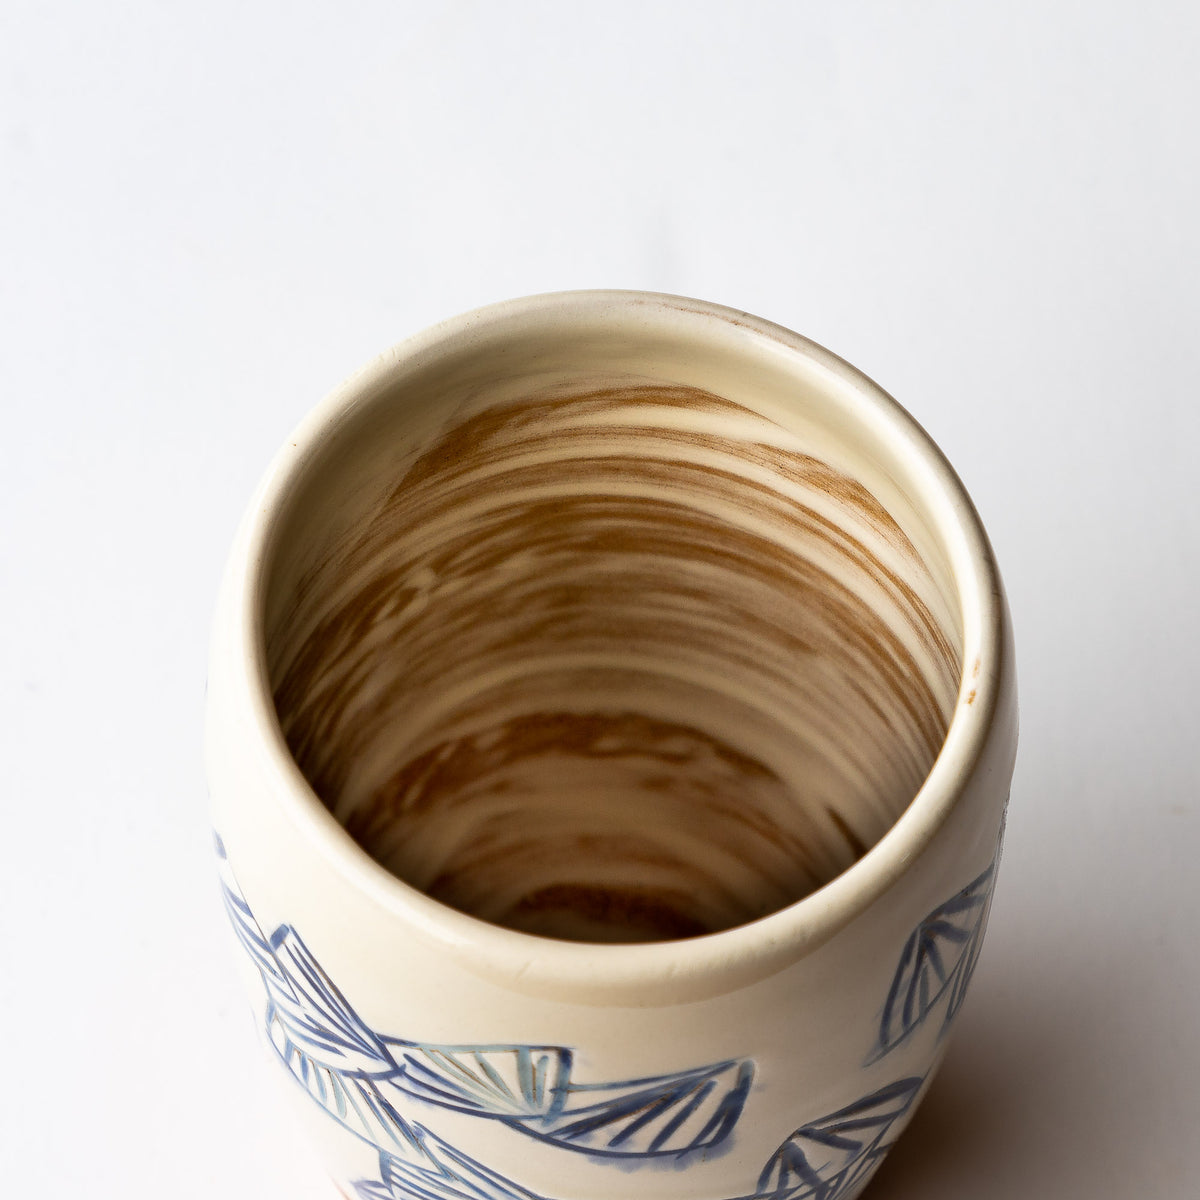 Interior View - Handmade Mishima Espresso Cup With Lines Pattern